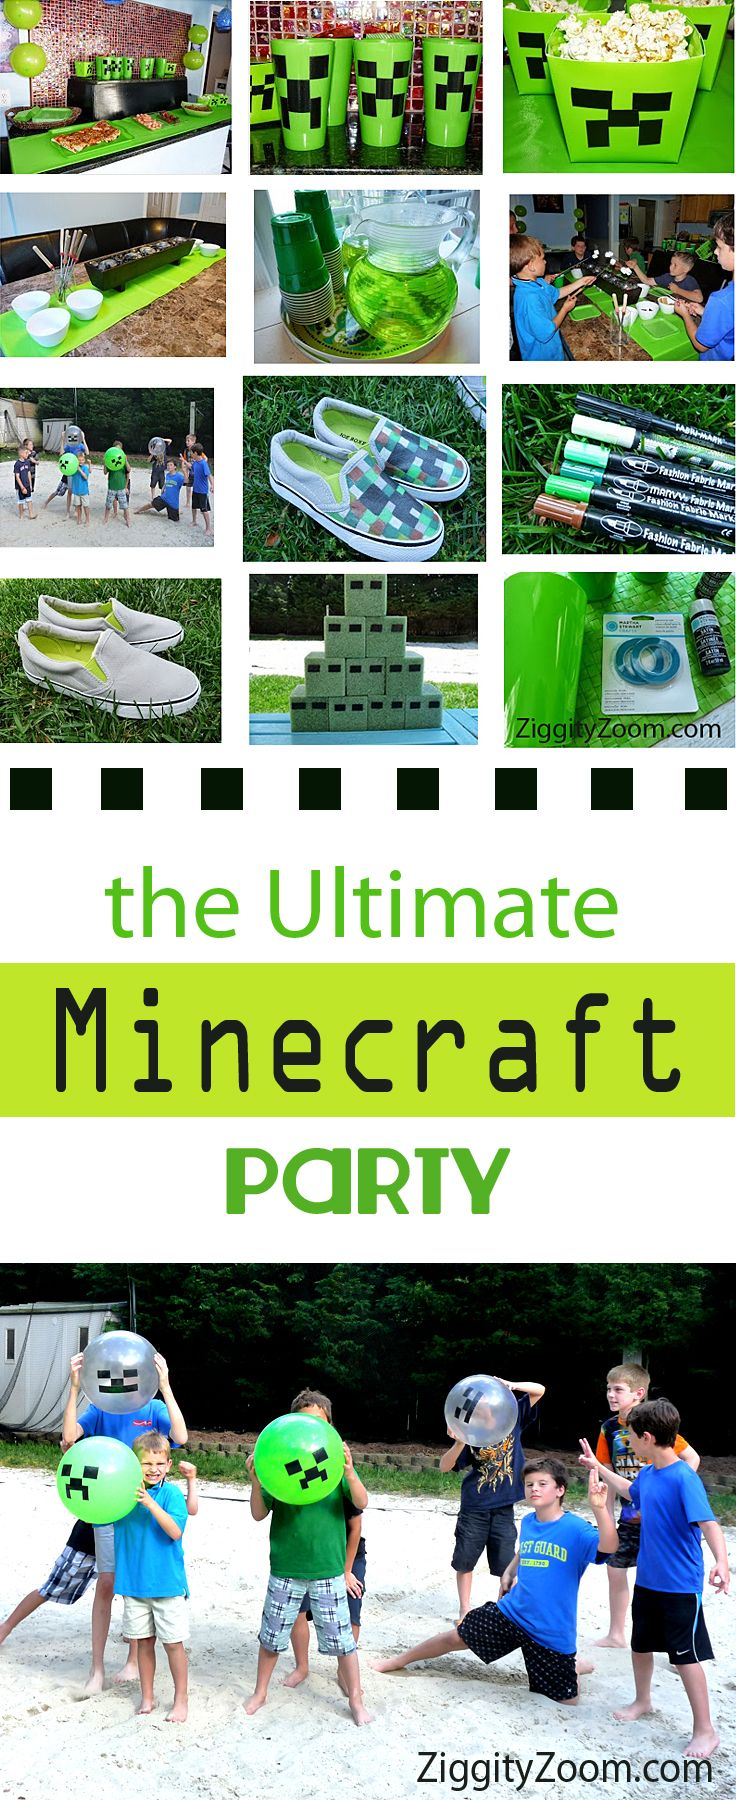 Minecraft party ideas for kids who love Minecraft- boys party ideas- green party colors- minecraft block shoes